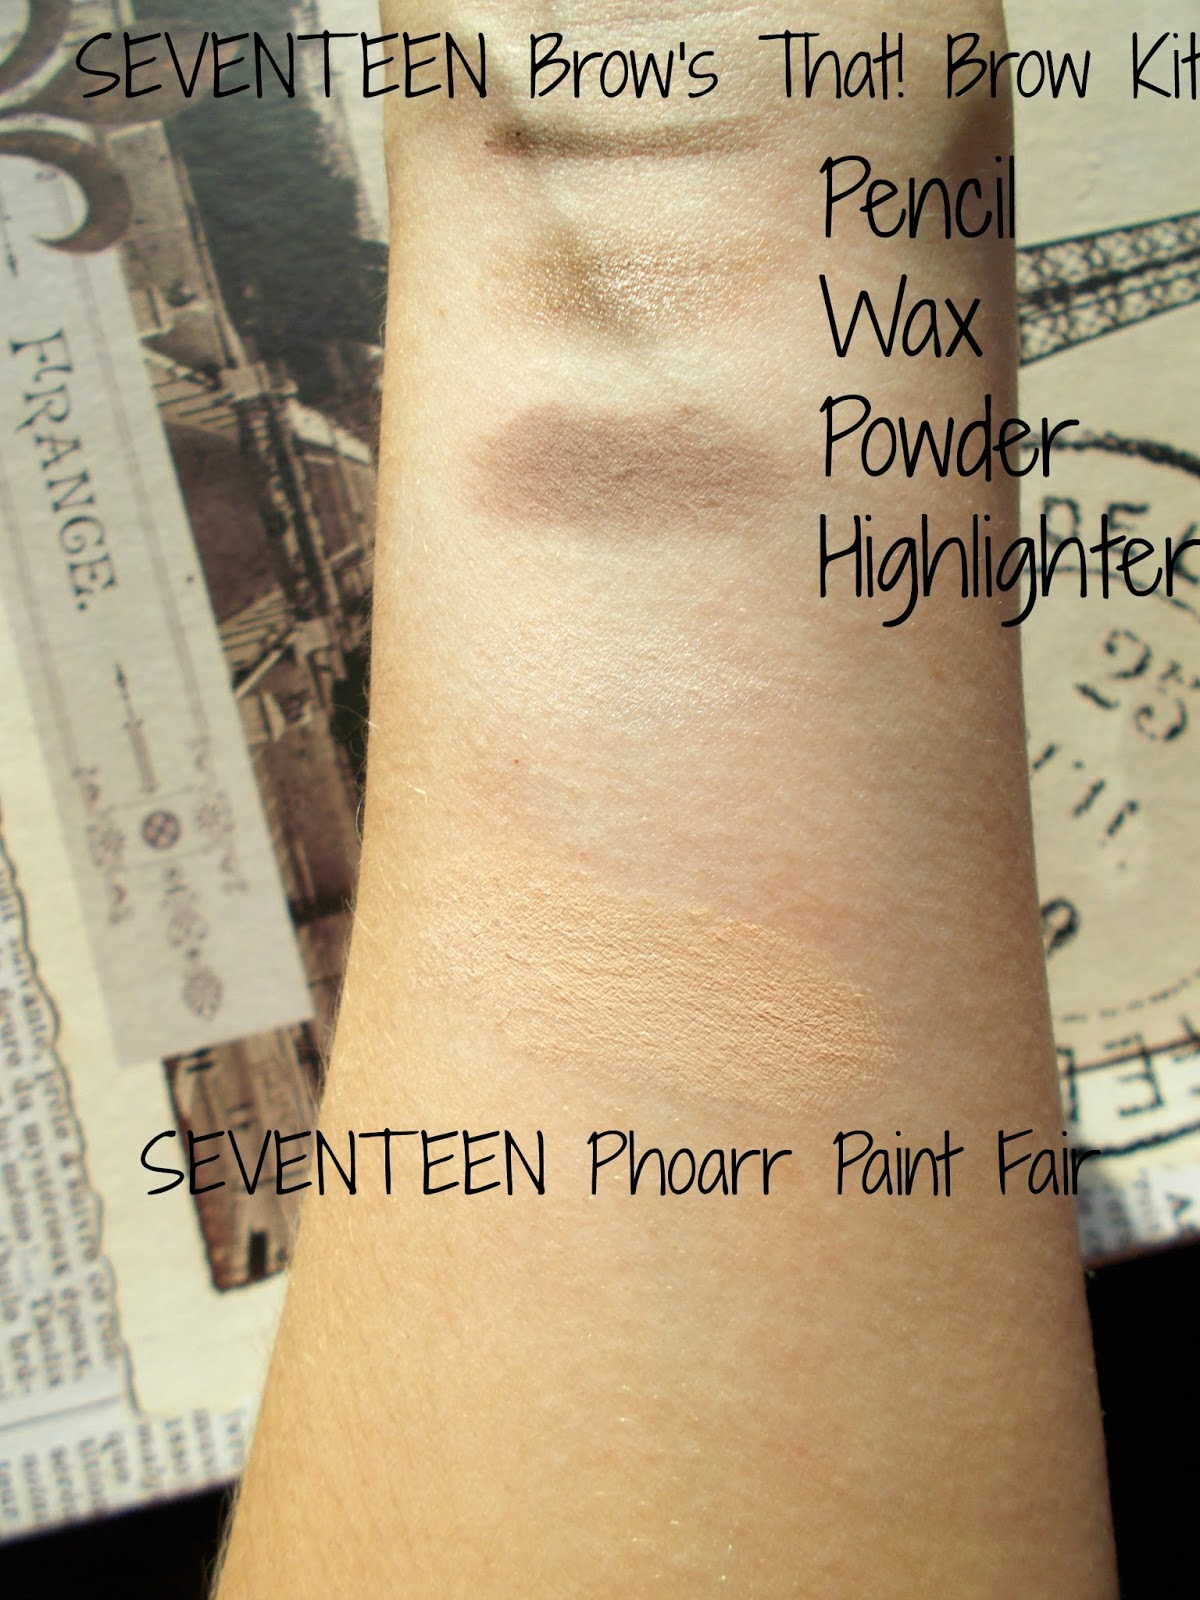 SEVENTEEN Brows that! brow kit phoarr paint fair swatches